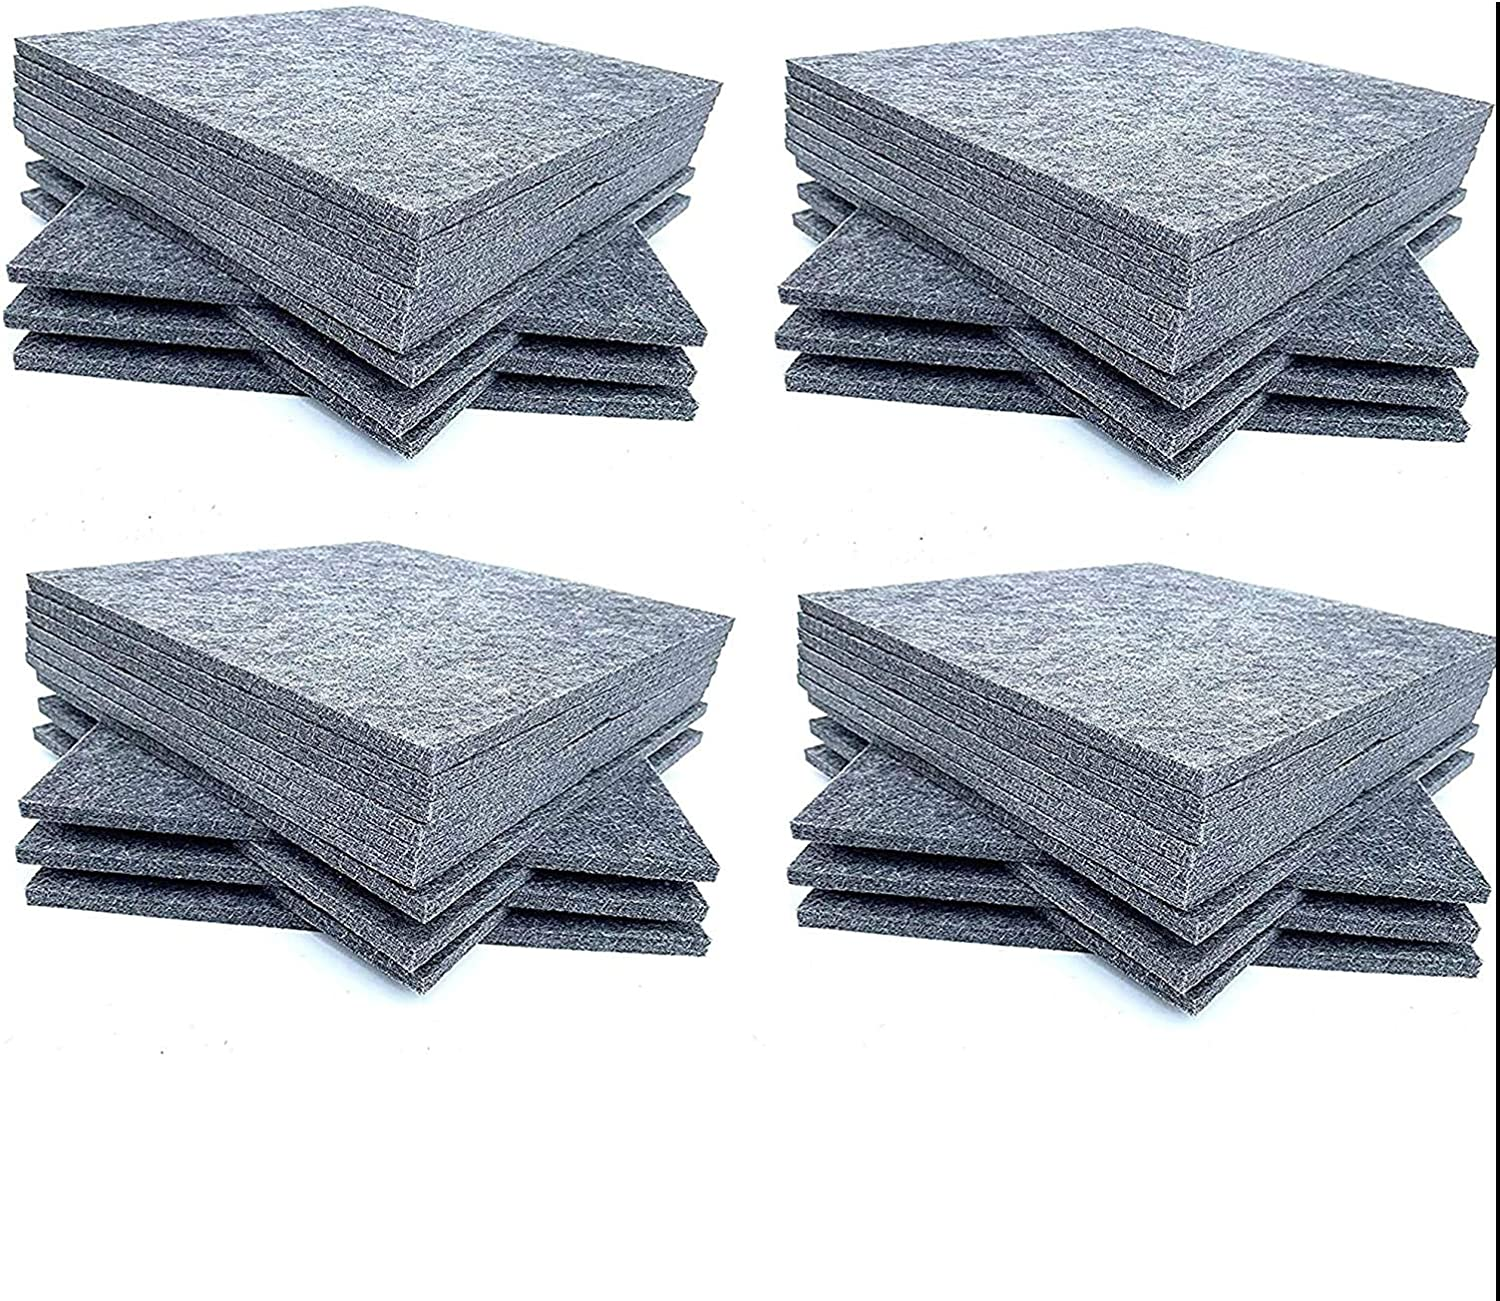 48 Pack Set Acoustic Absorption Panel, 12 X 12 X 0.4 Inches Grey Acoustic Soundproofing Insulation Panel Tiles, Acoustic Treatment Used in Home & Offices